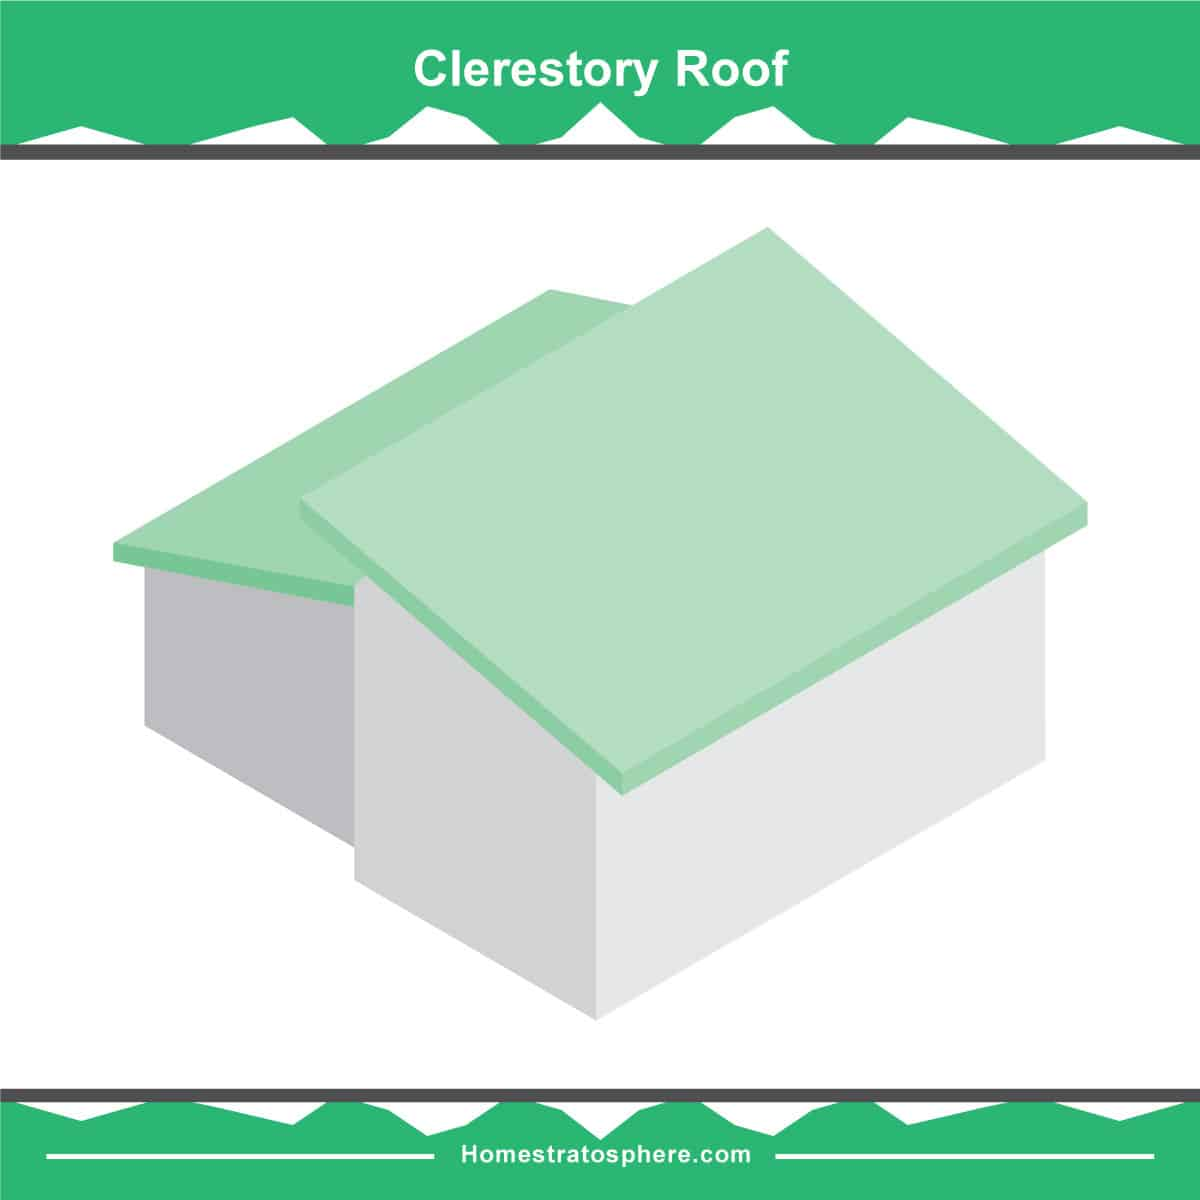 Clerestory roof diagram